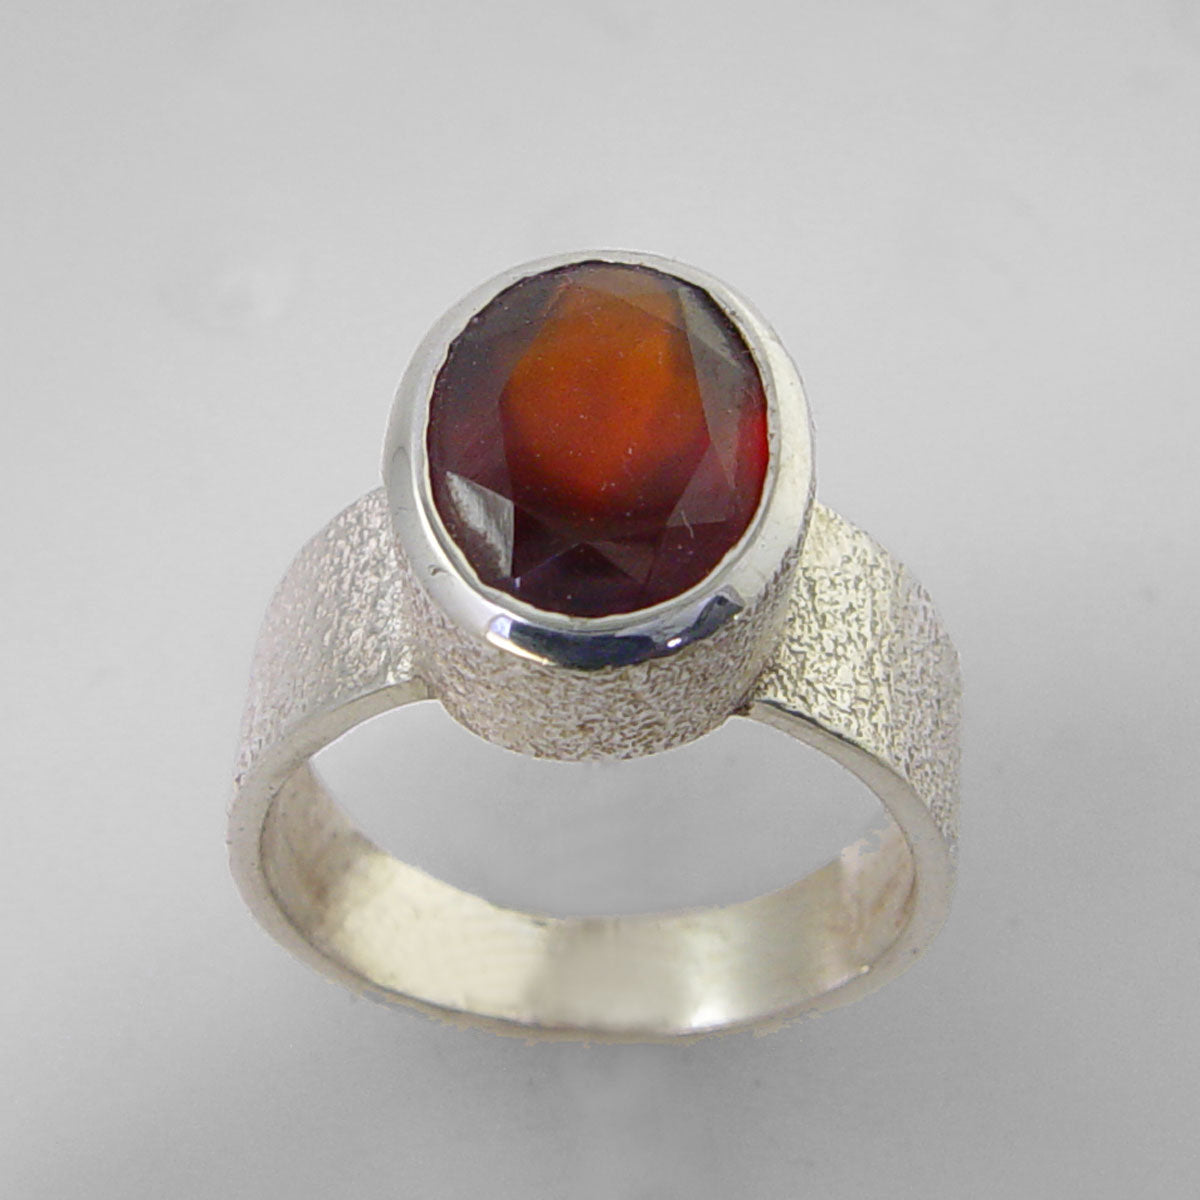 Cinnamon Hessonite Garnet 6.3 ct Faceted Oval Sterling Silver Ring, Size 8